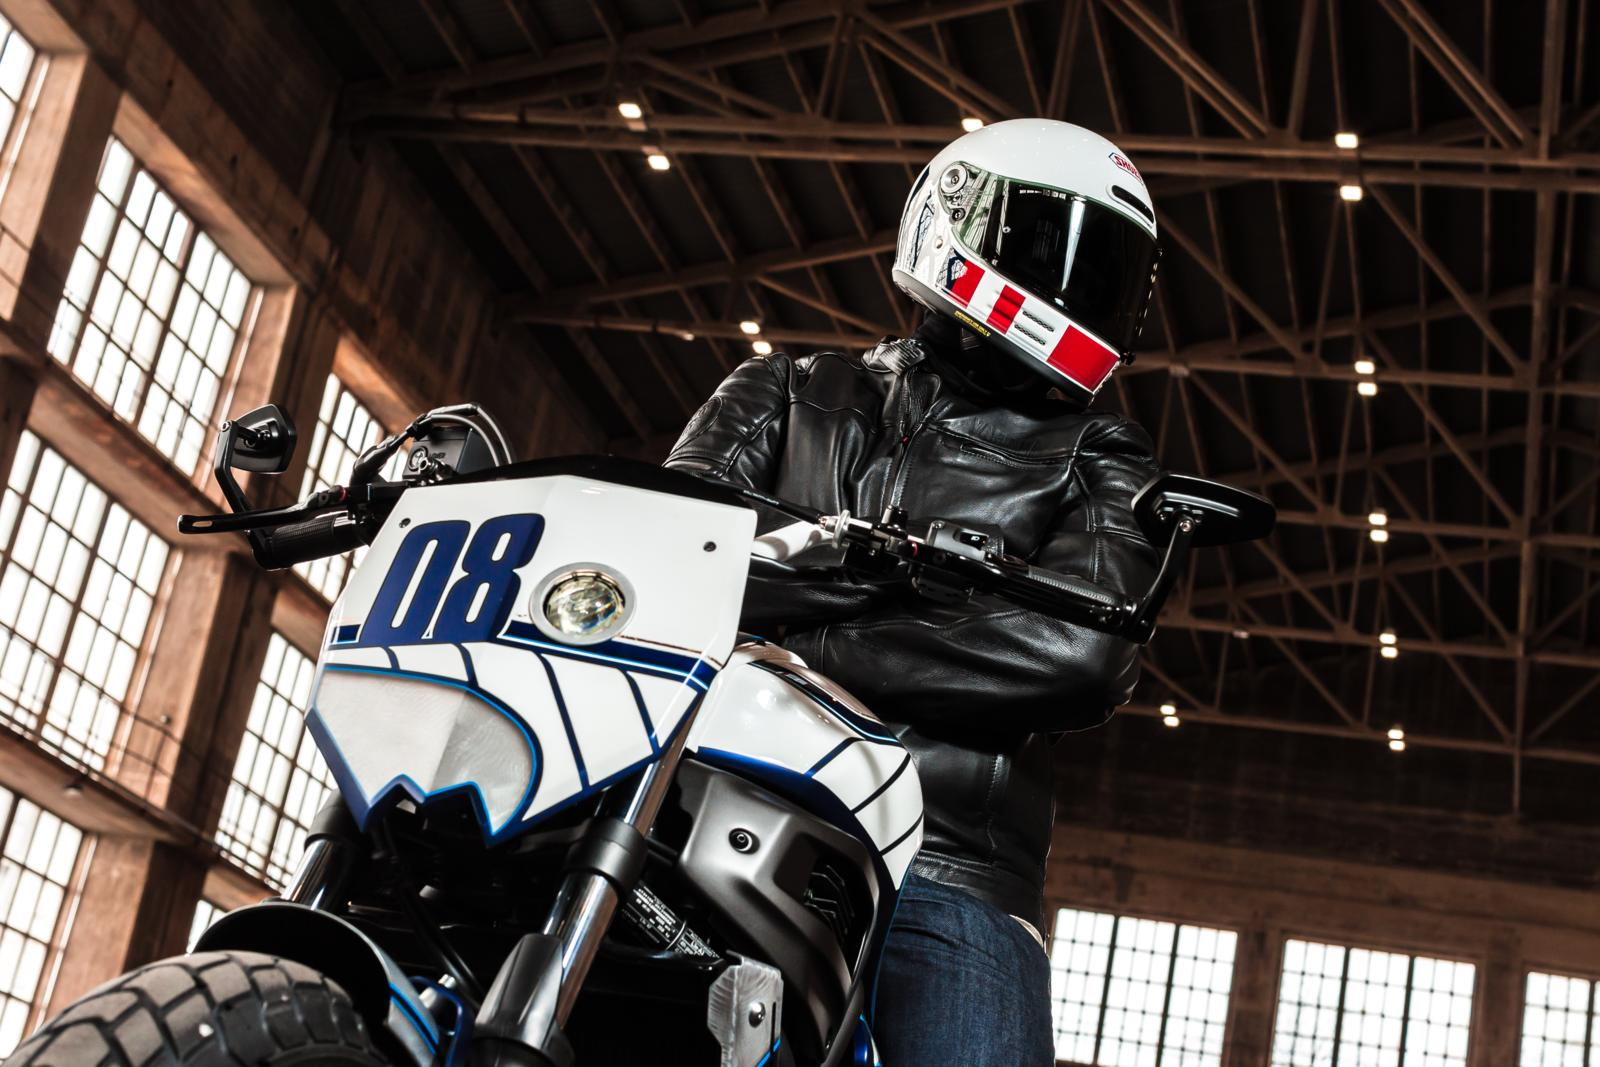 Yamaha XSR700 FUJIN by Bobber Garage (5)_preview